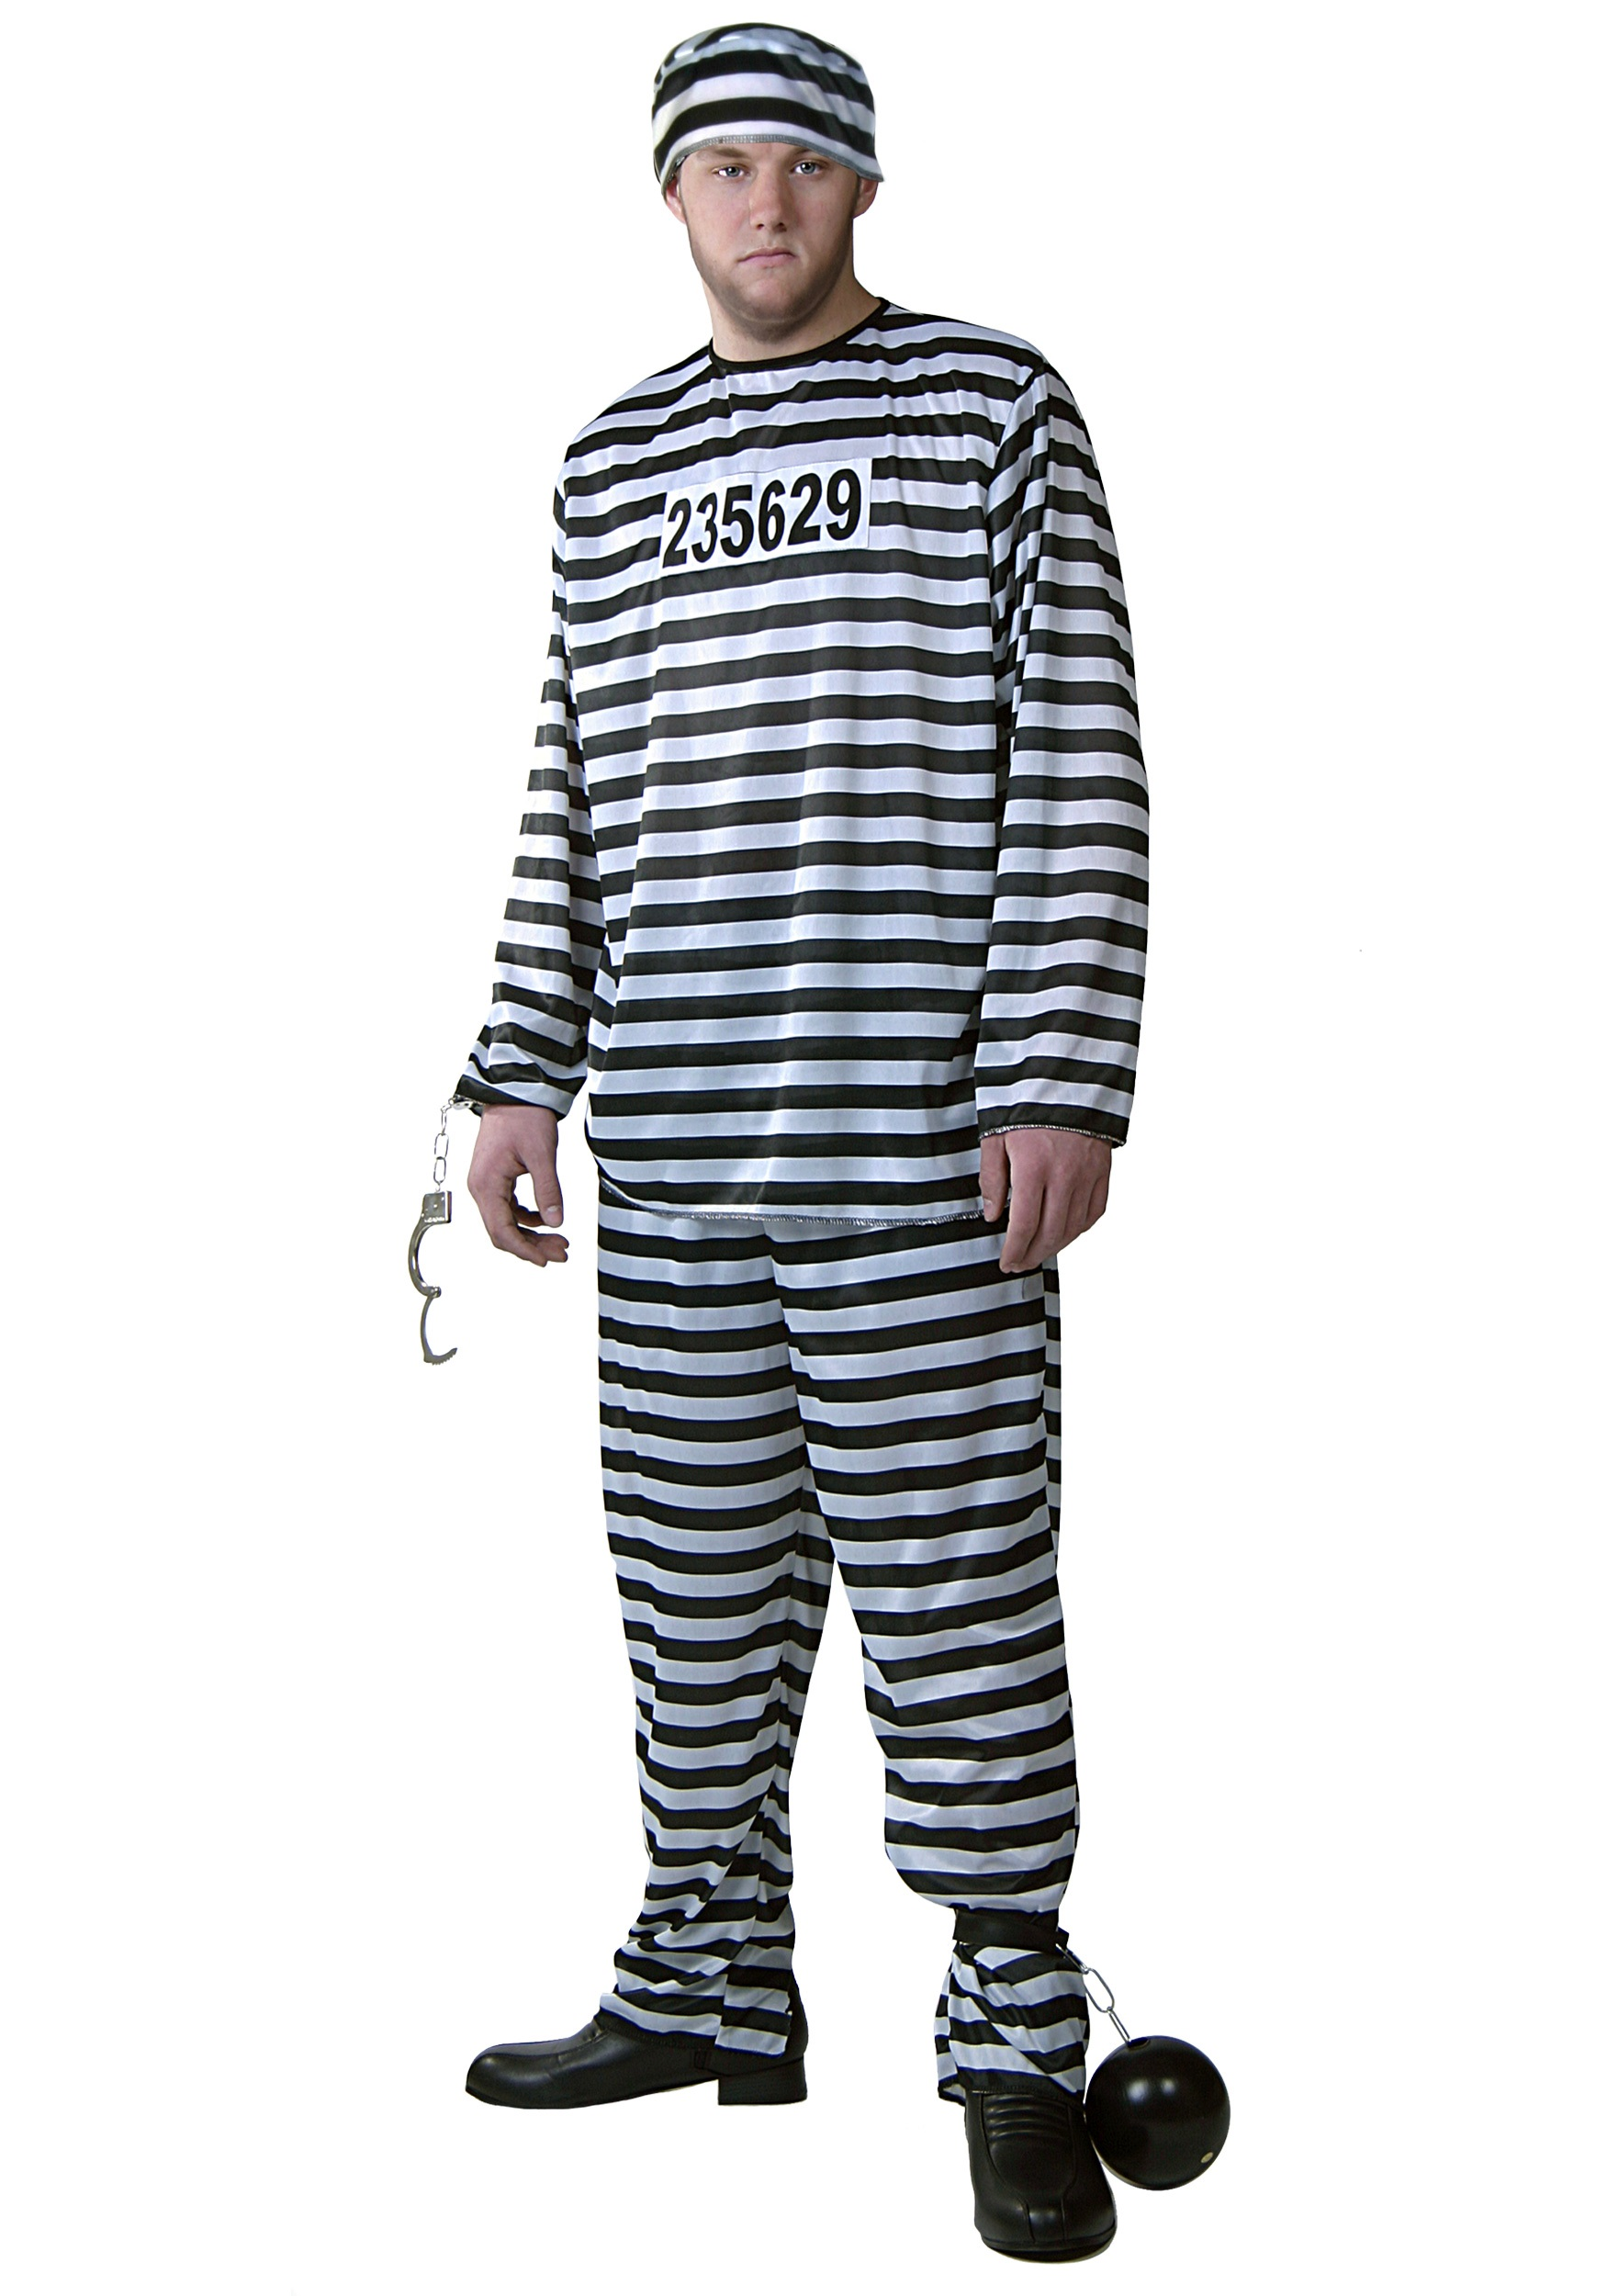 Mens Prisoner Costume - Prison Jumpsuit Costumes  sc 1 st  Walmart.com : womens orange prison jumpsuit costume  - Germanpascual.Com